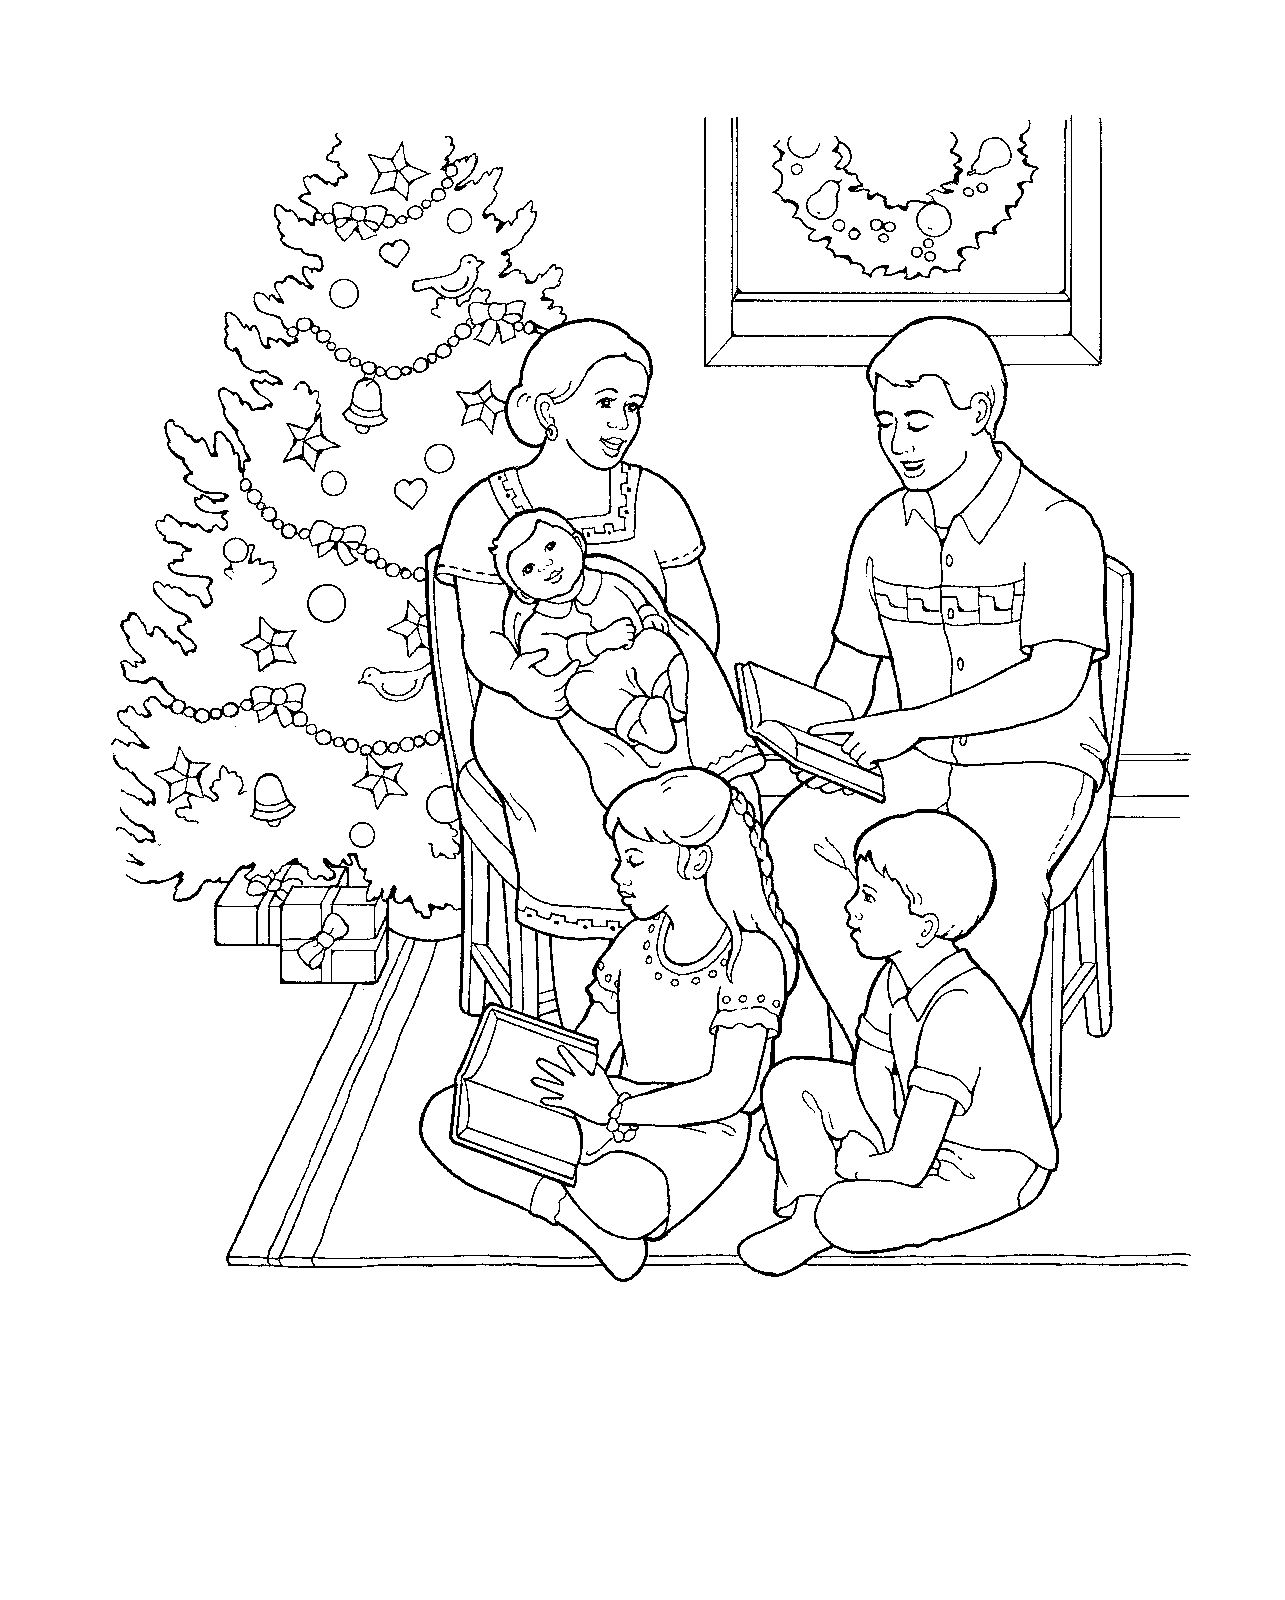 A Family At Christmas Coloring Page For Primary Kids From